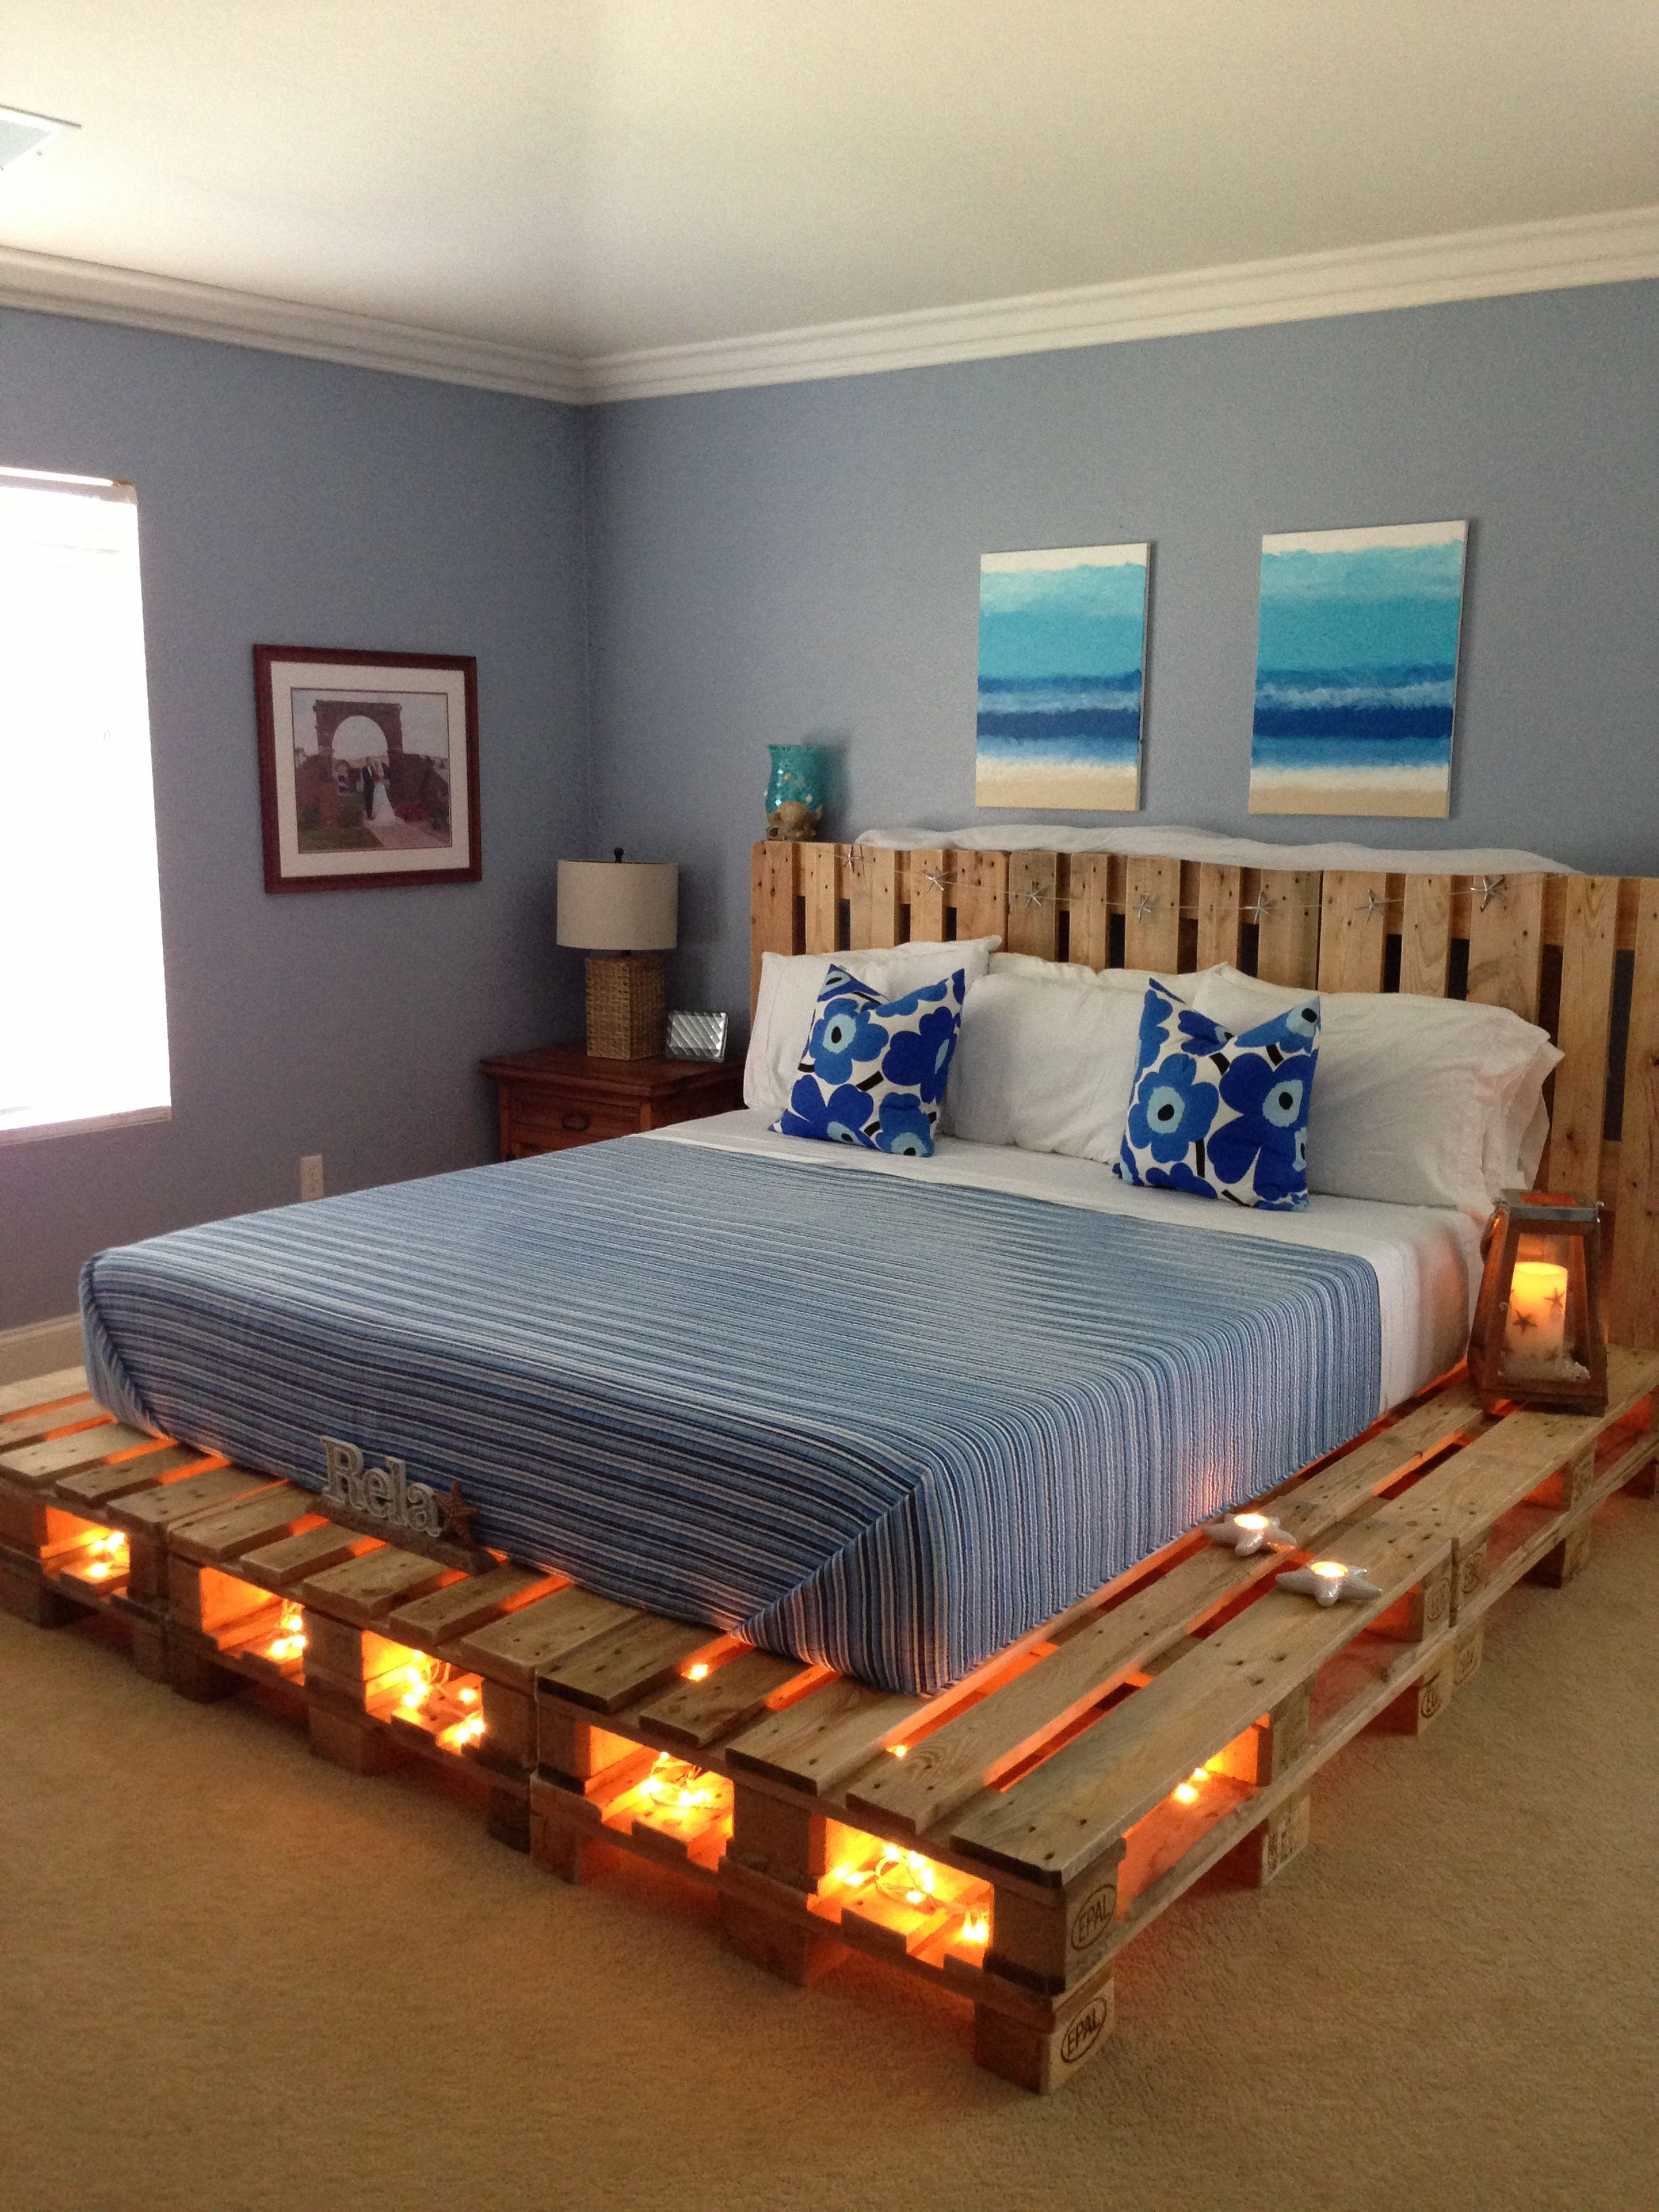 Pallet Beds are cool Amazing and Inexpensive